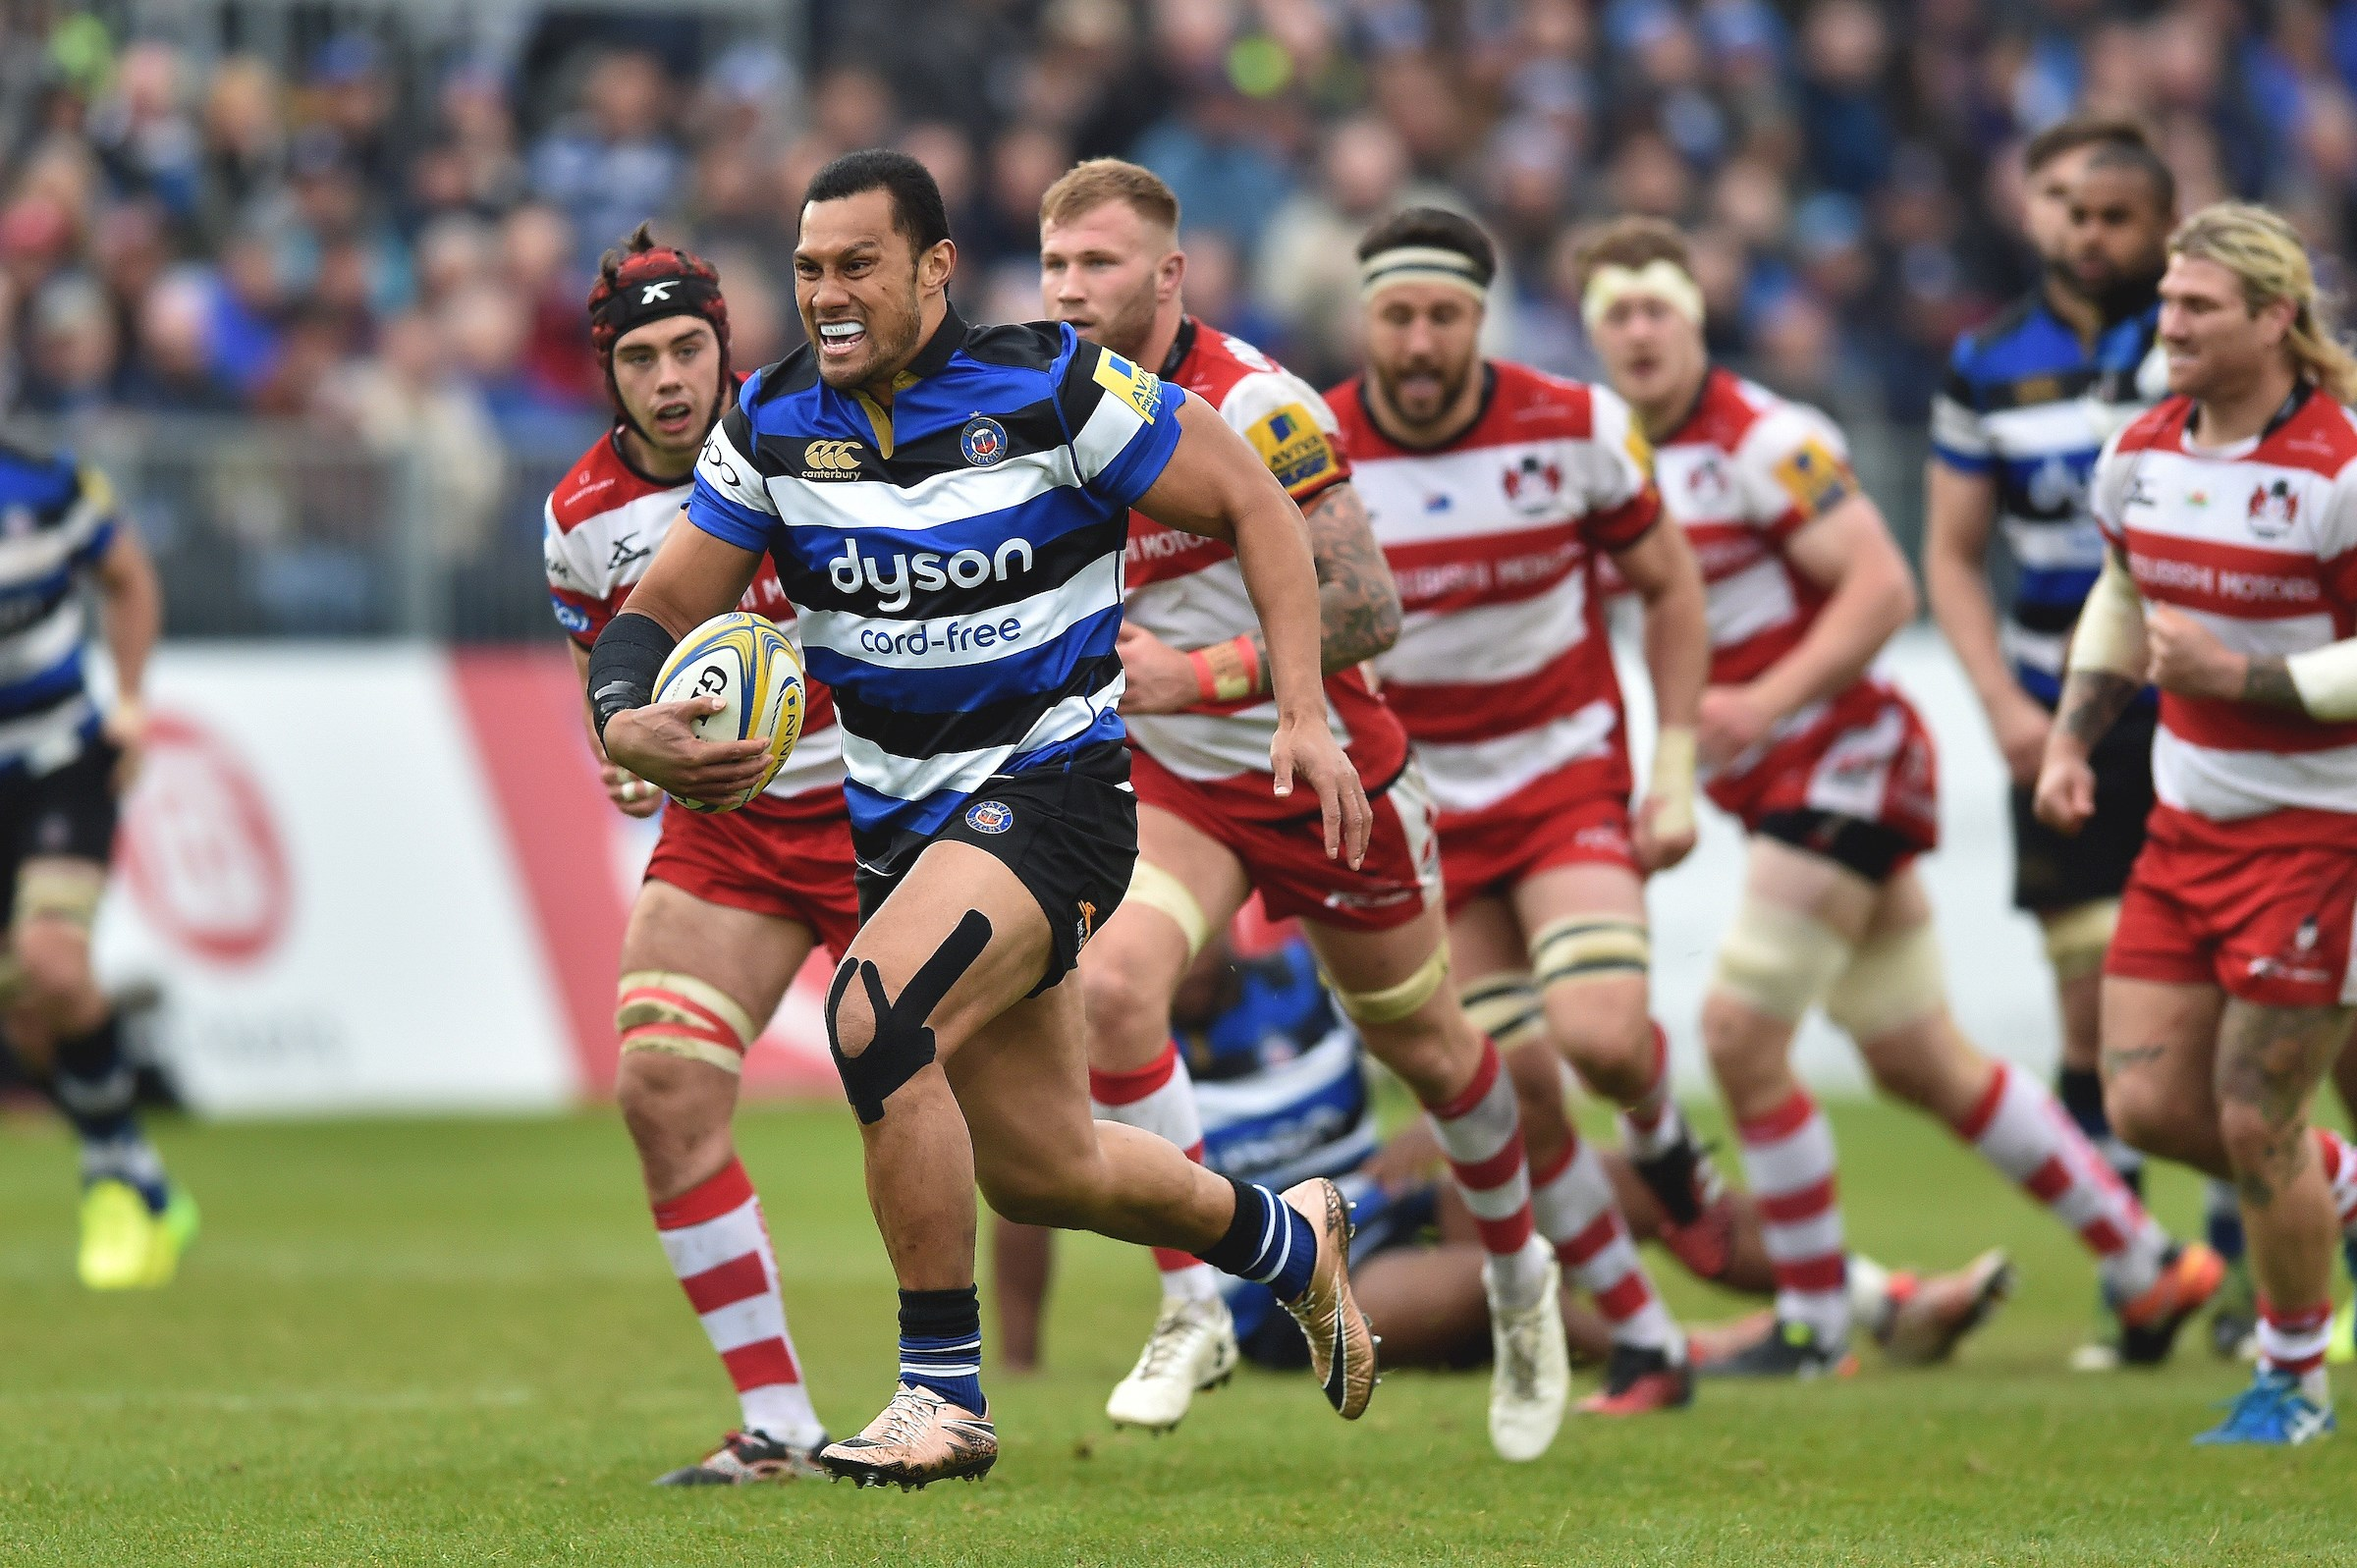 Fruean and Stooke to start for Bath United against the UK Armed Forces